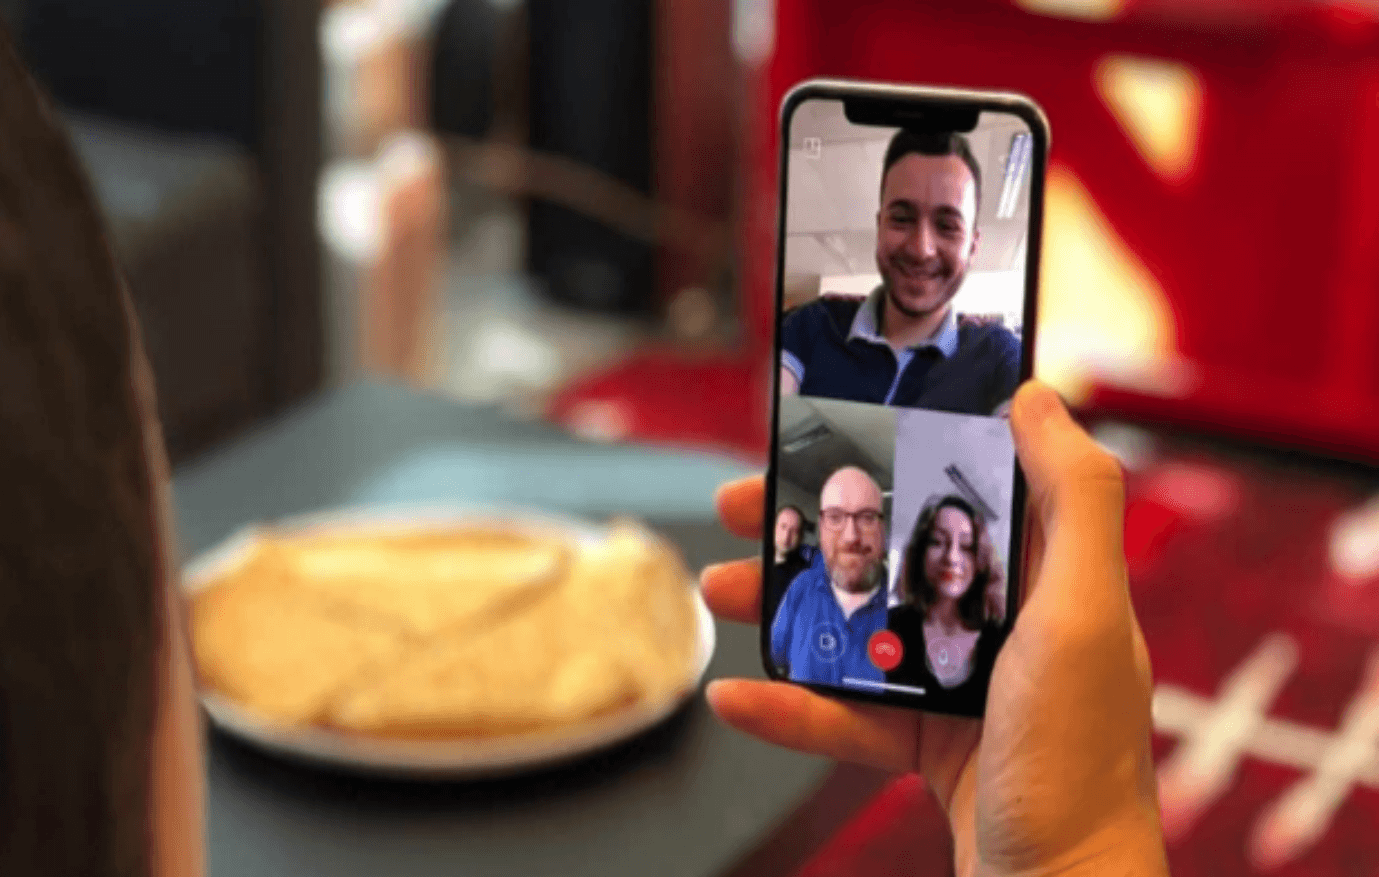 How to make group video calls on Instagram